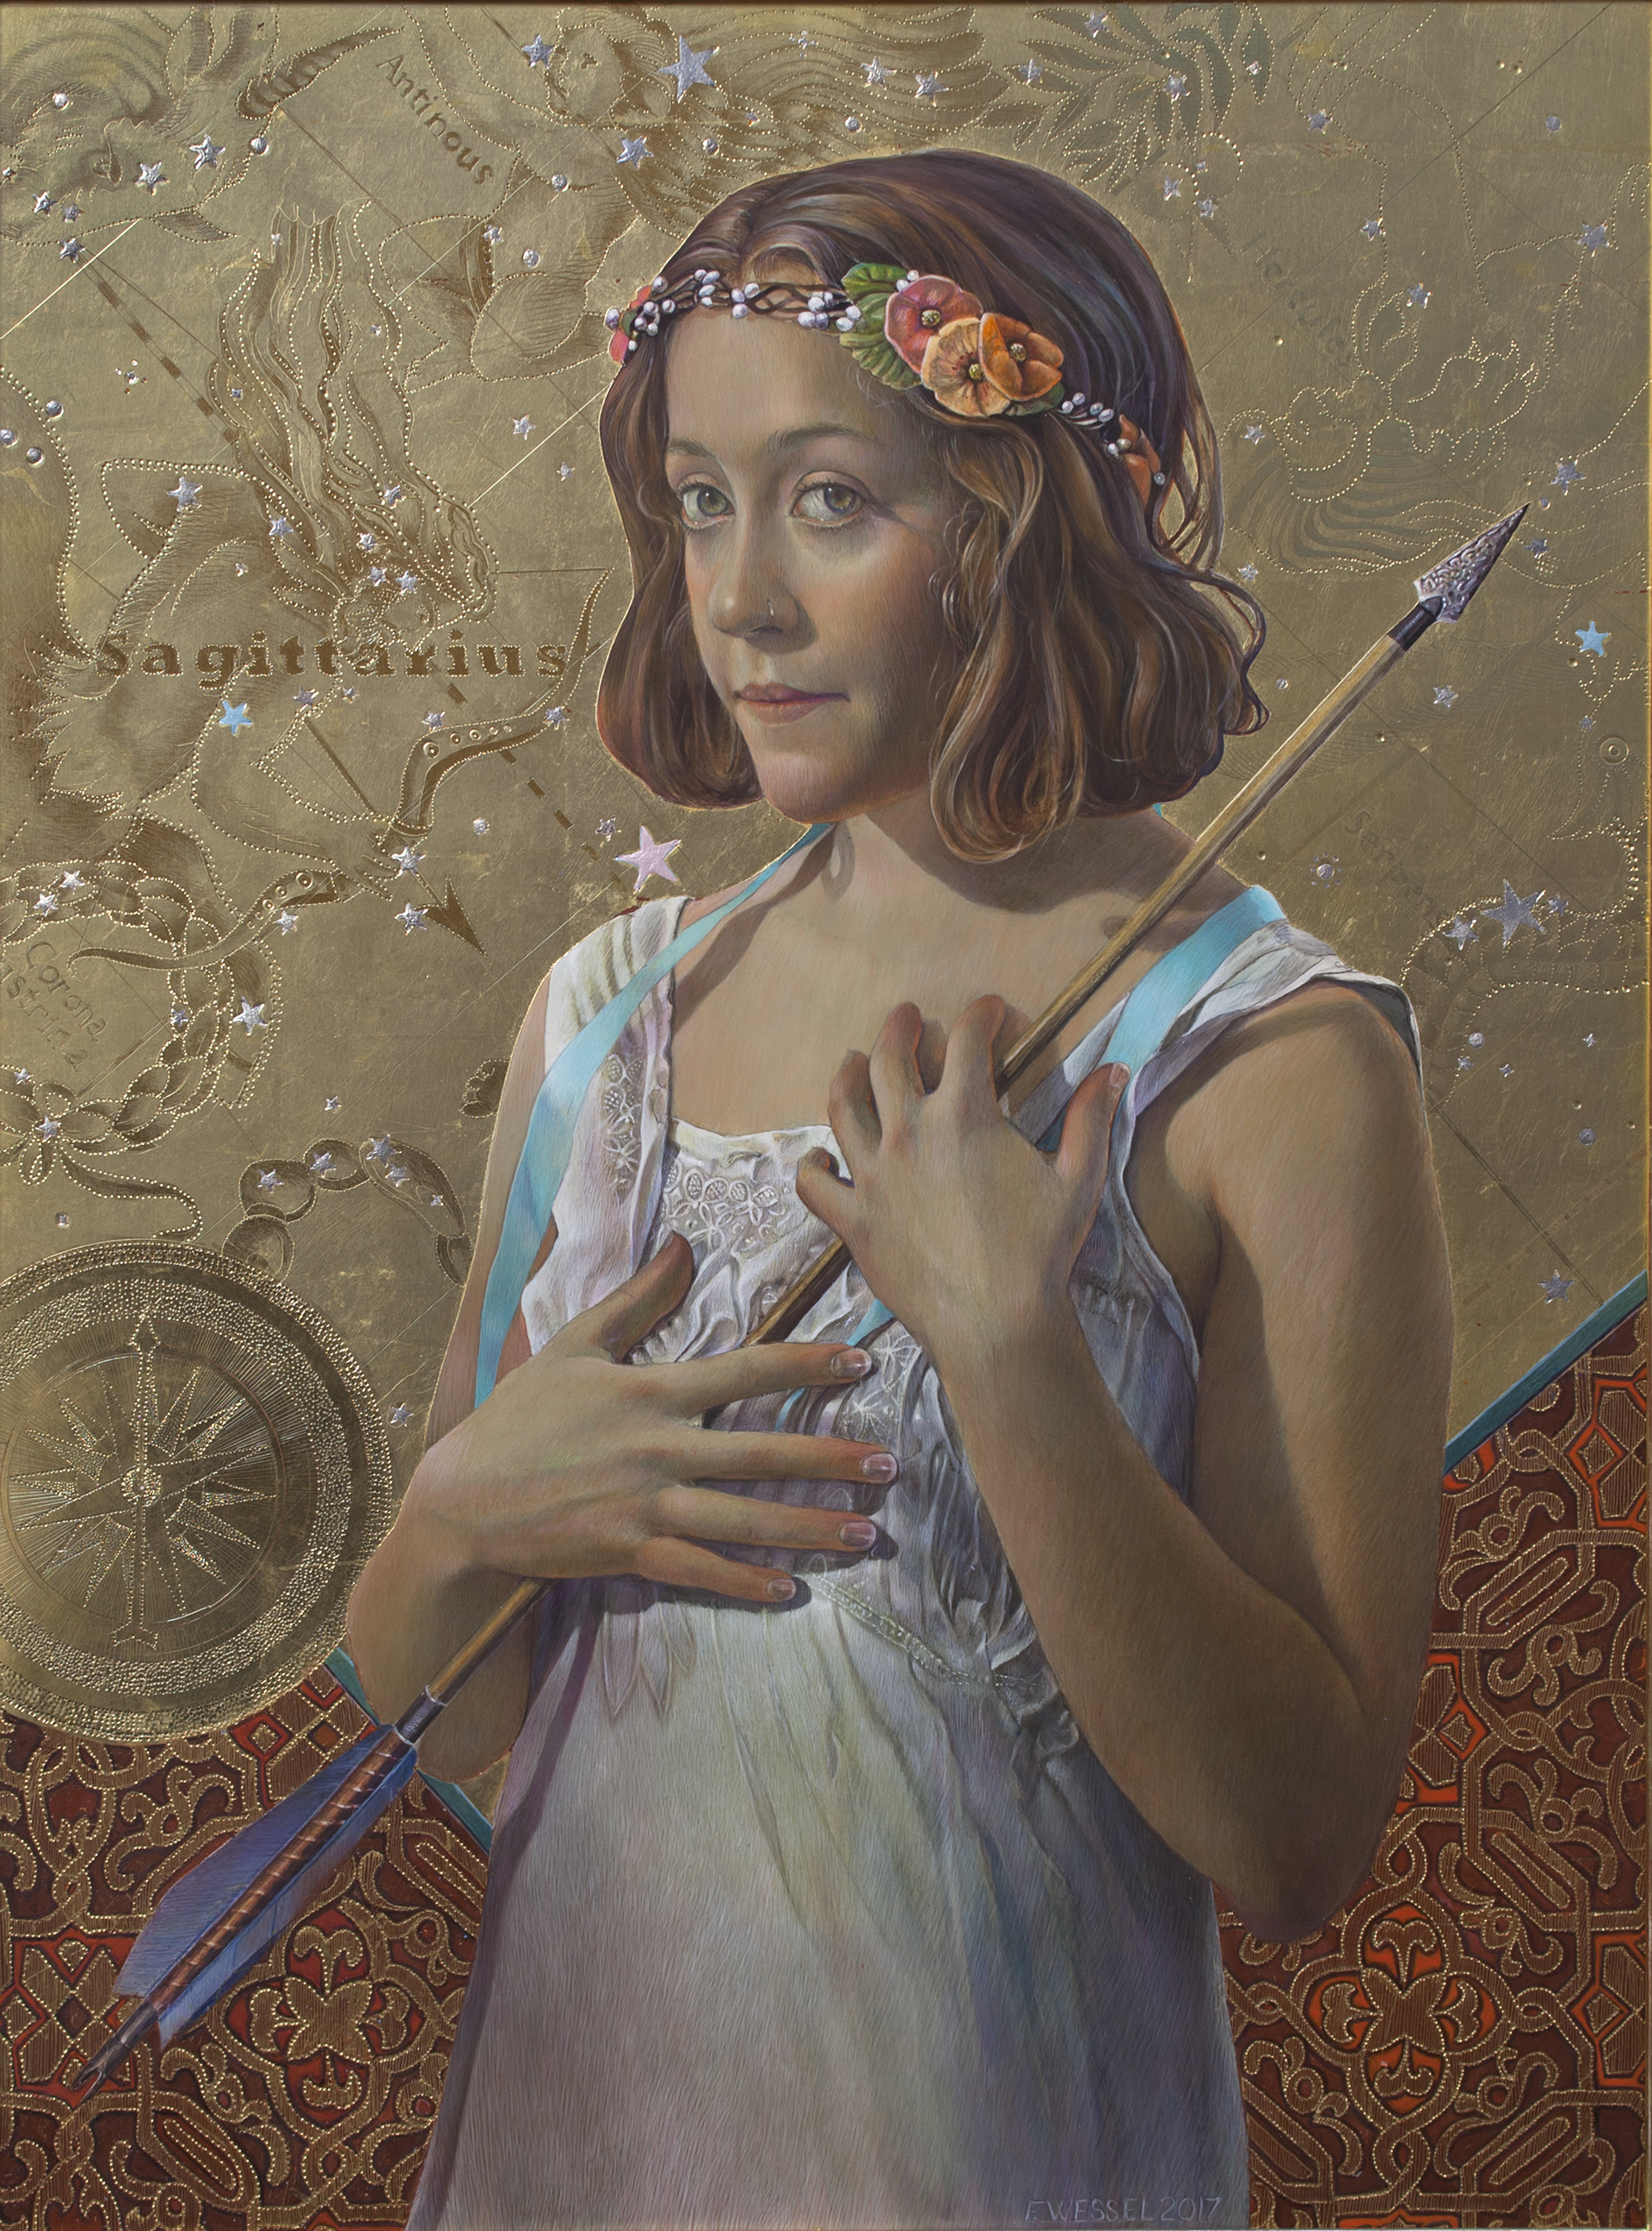 The Constellation Sagittarius by Fred Wessel